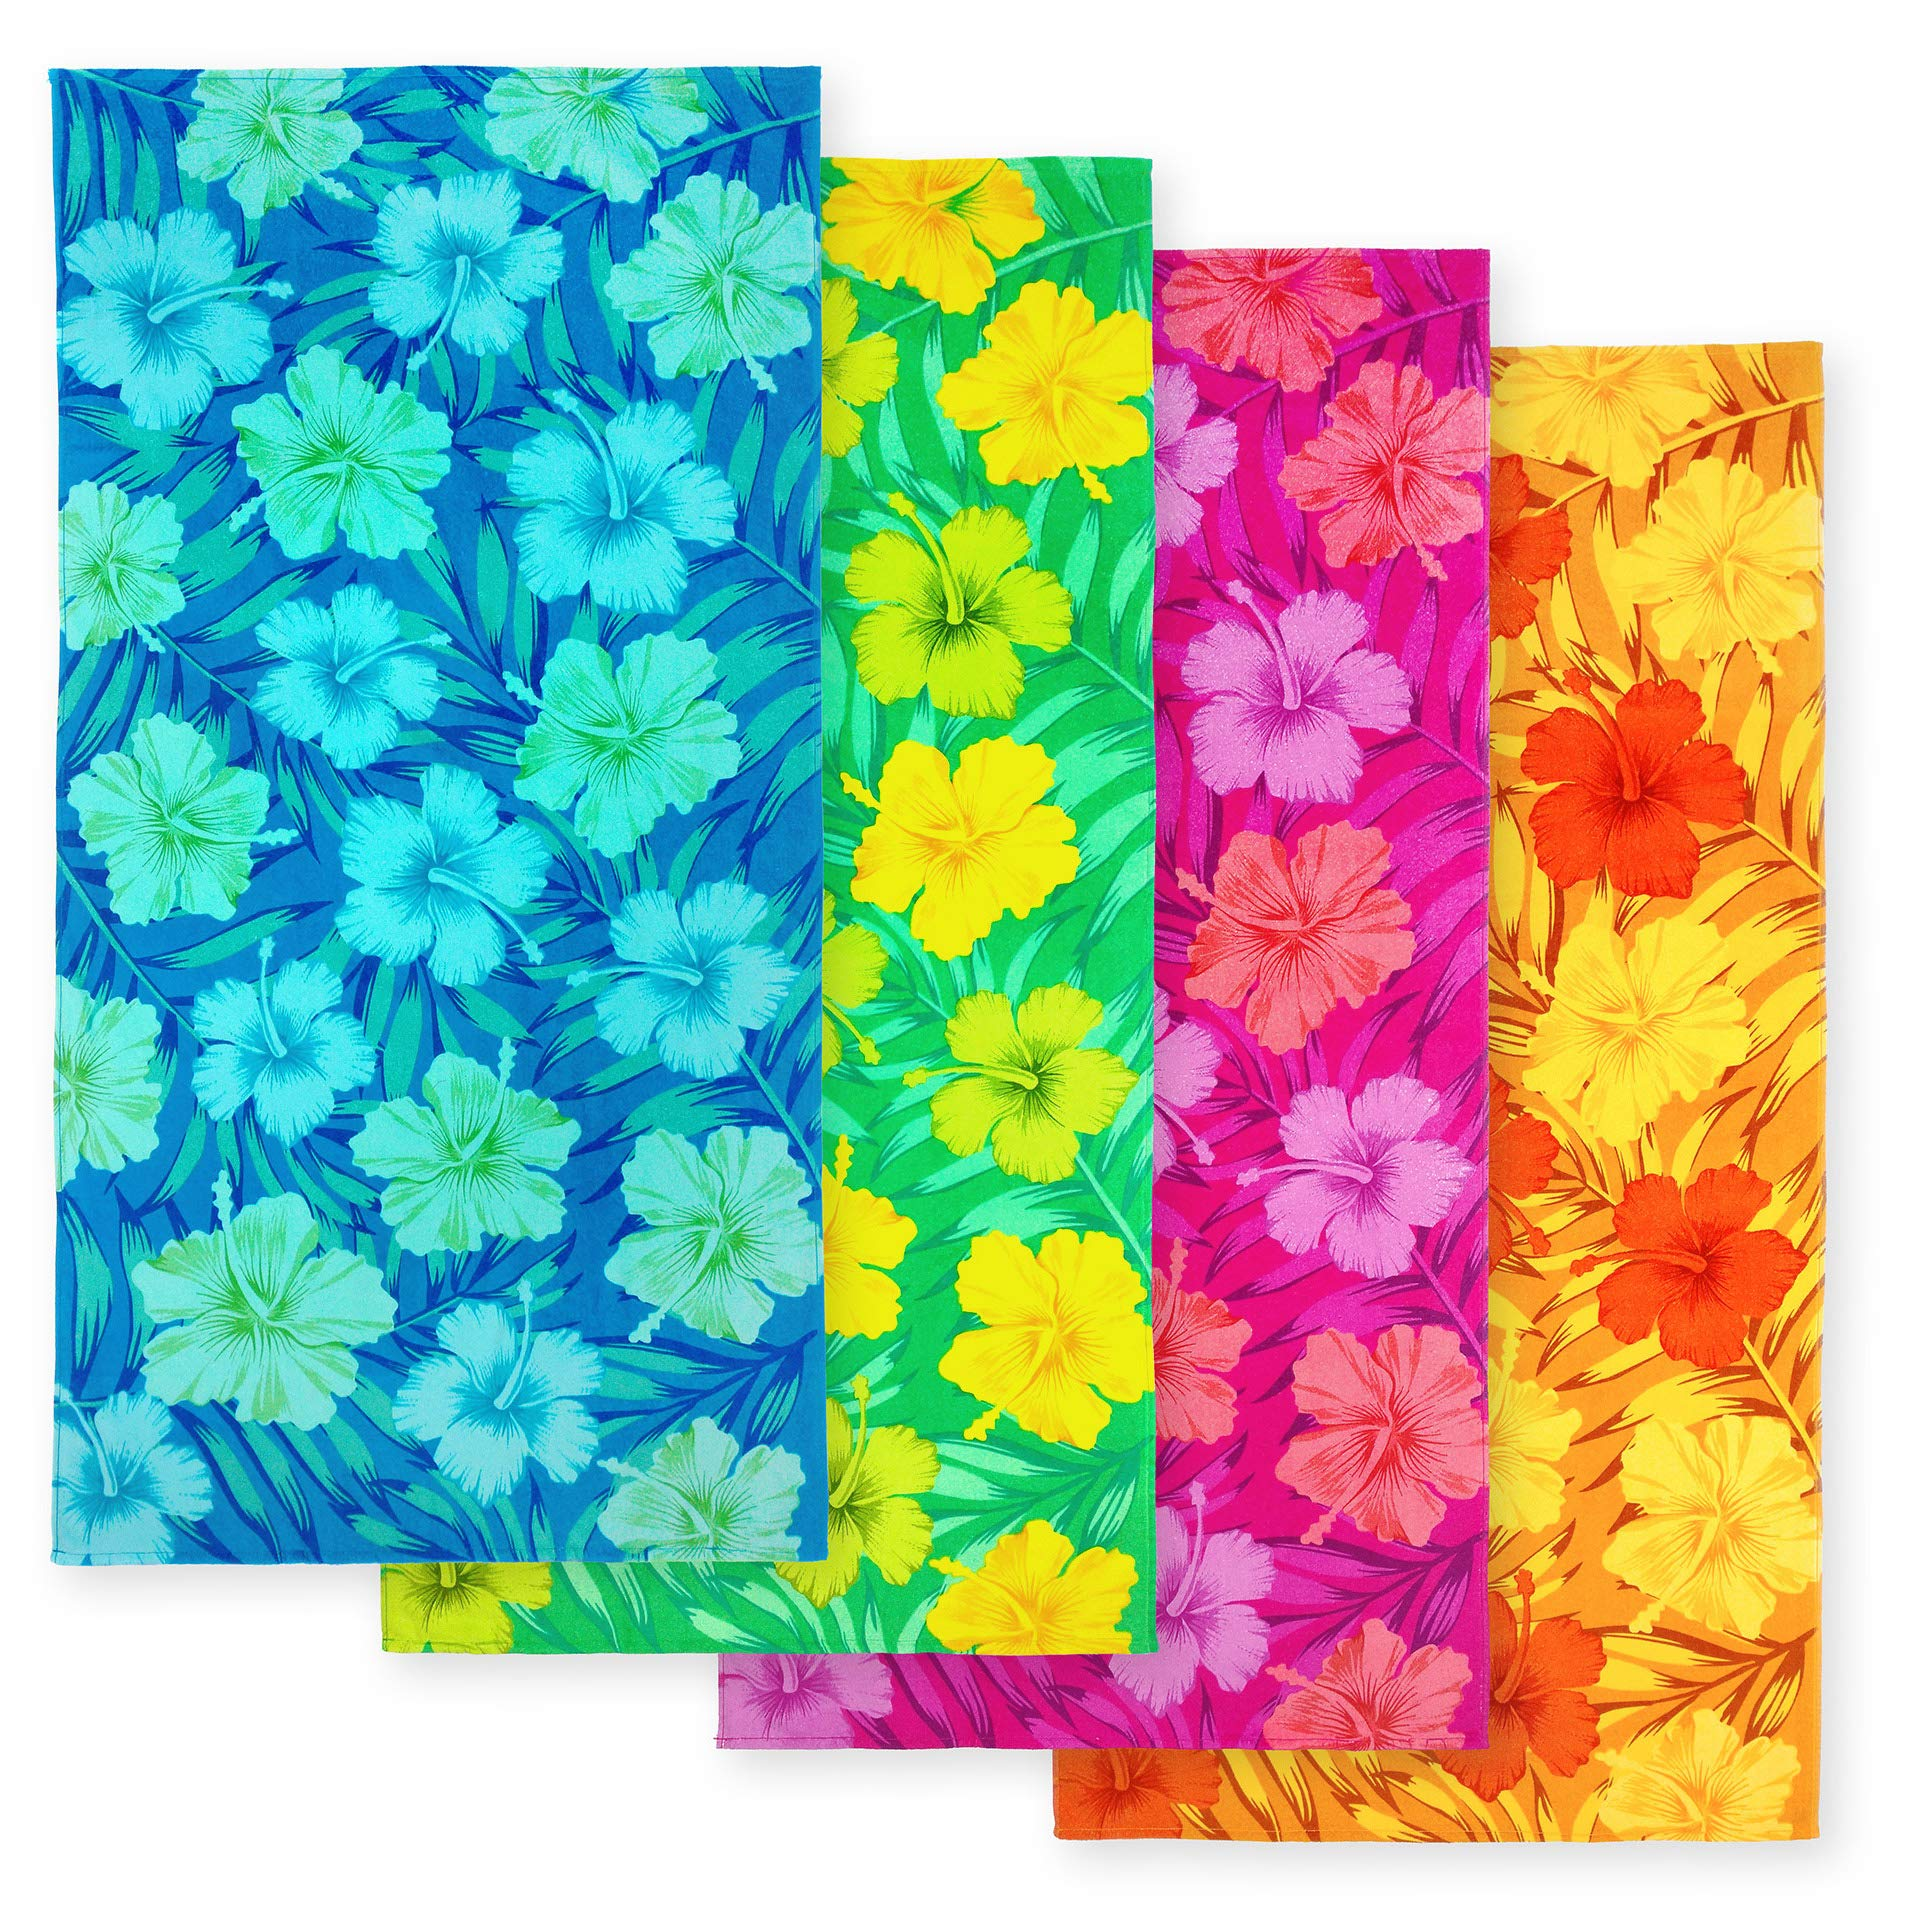 Kaufman - Hibiscus Beach Towel with A Ground LINE - 4 PC Pack - 106013 by Ben Kaufman Sales (Image #1)